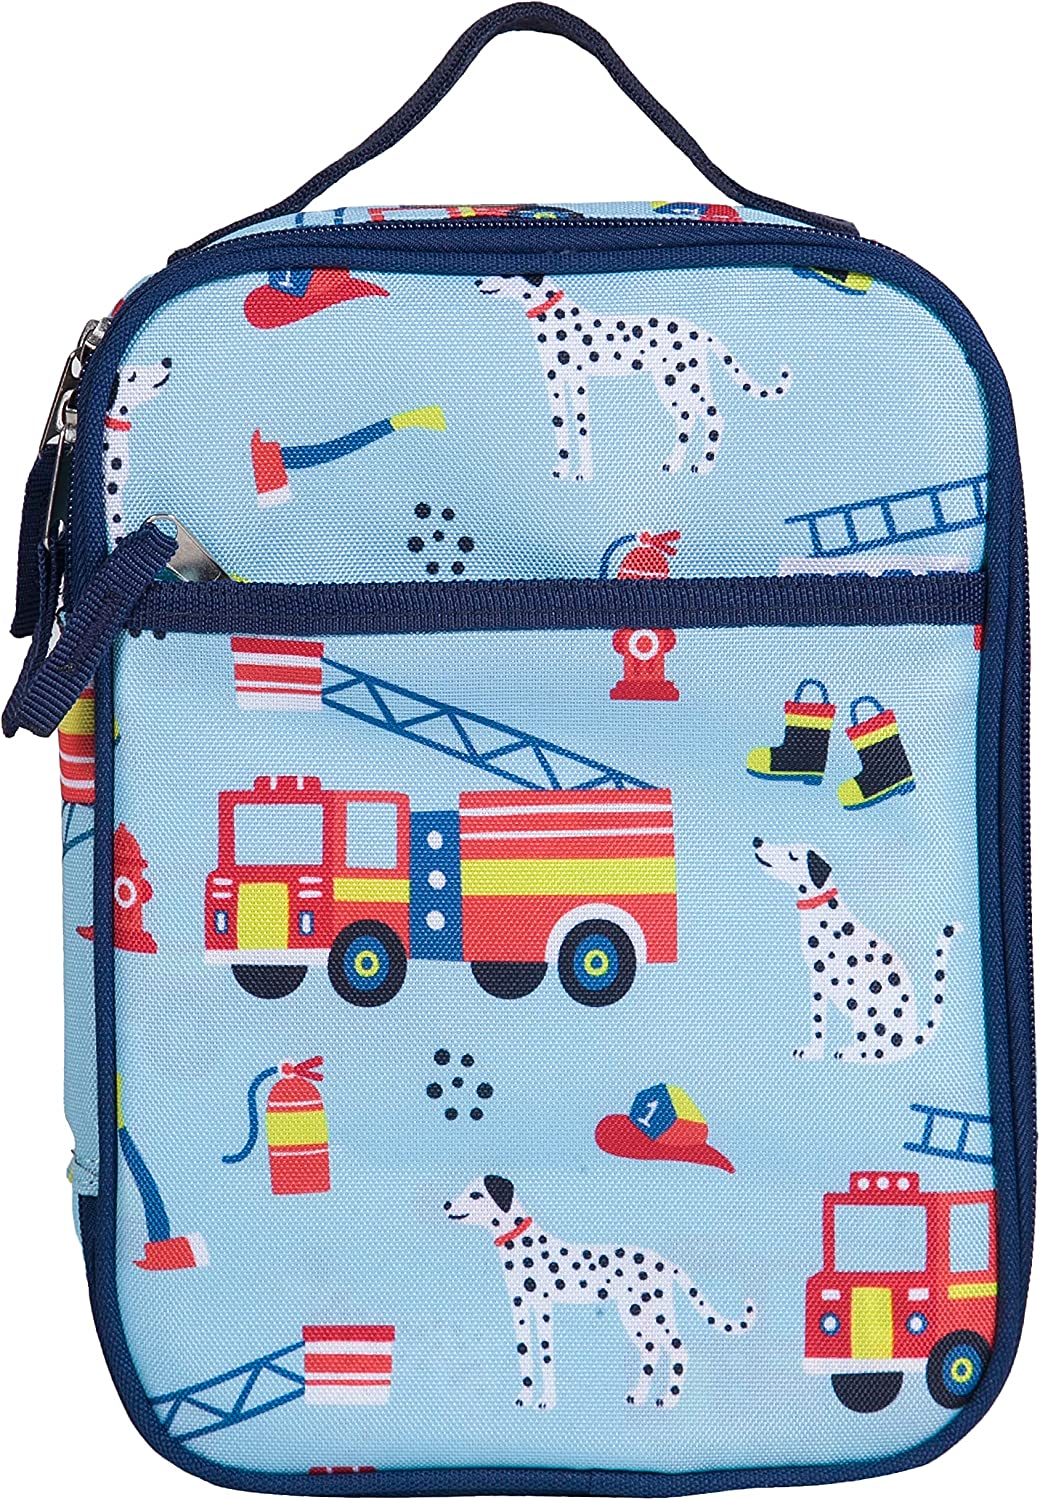 Wildkin Day2Day Kids Max 73% OFF Lunch Box Bag 9. Measures for High quality new Boys Girls